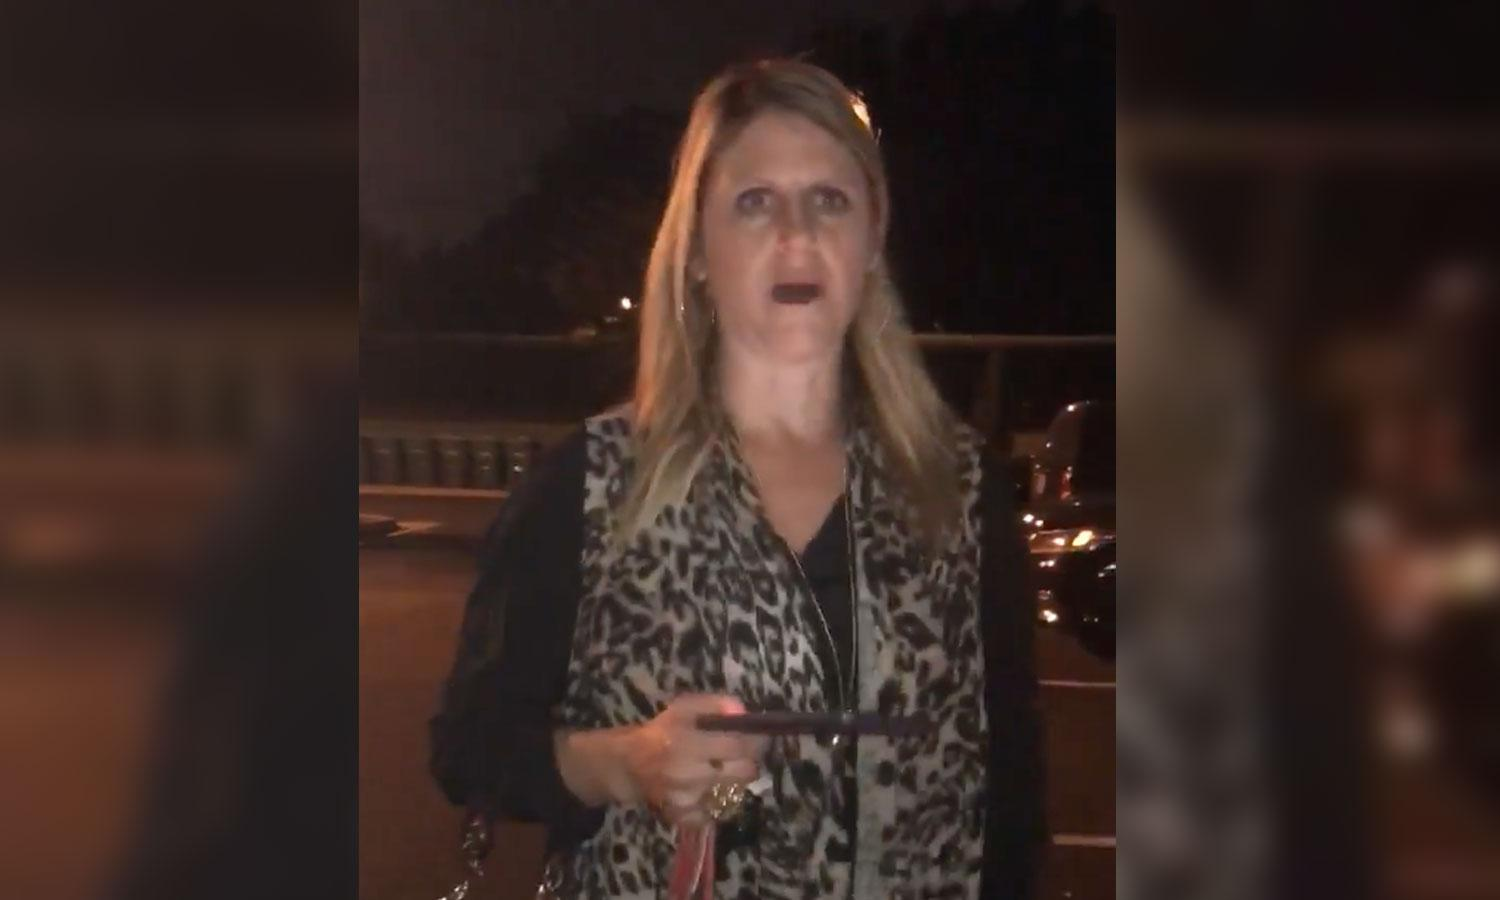 Charlotte woman whose racist rant went viral is now missing